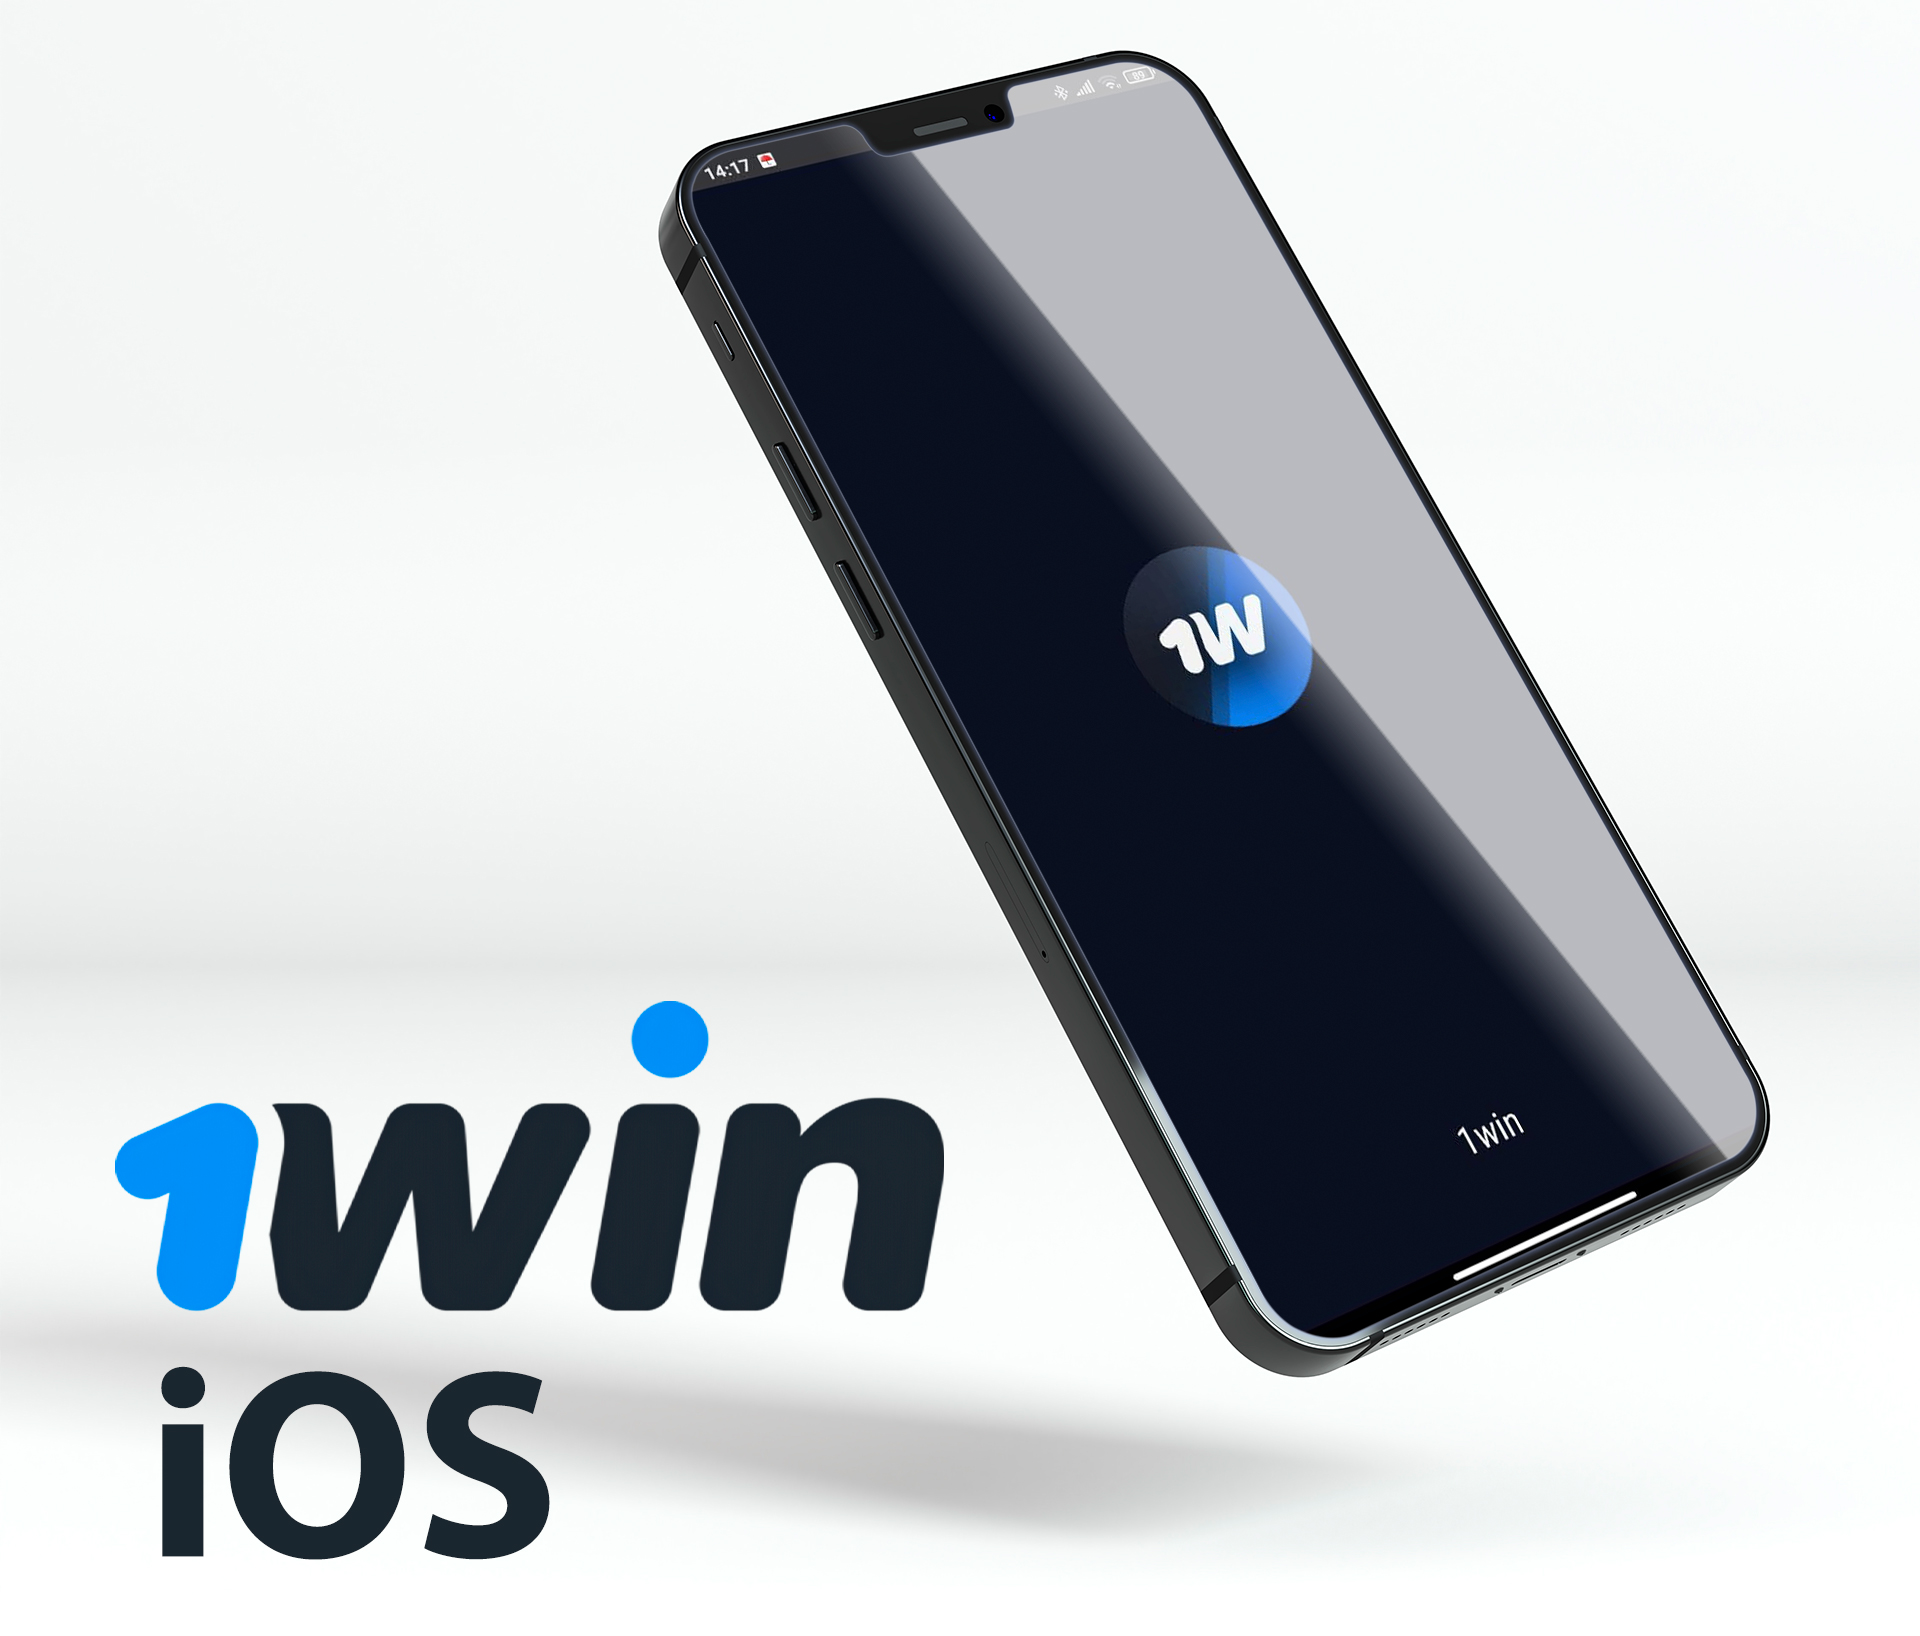 You can download the 1win app for iOS only from the 1win official website.